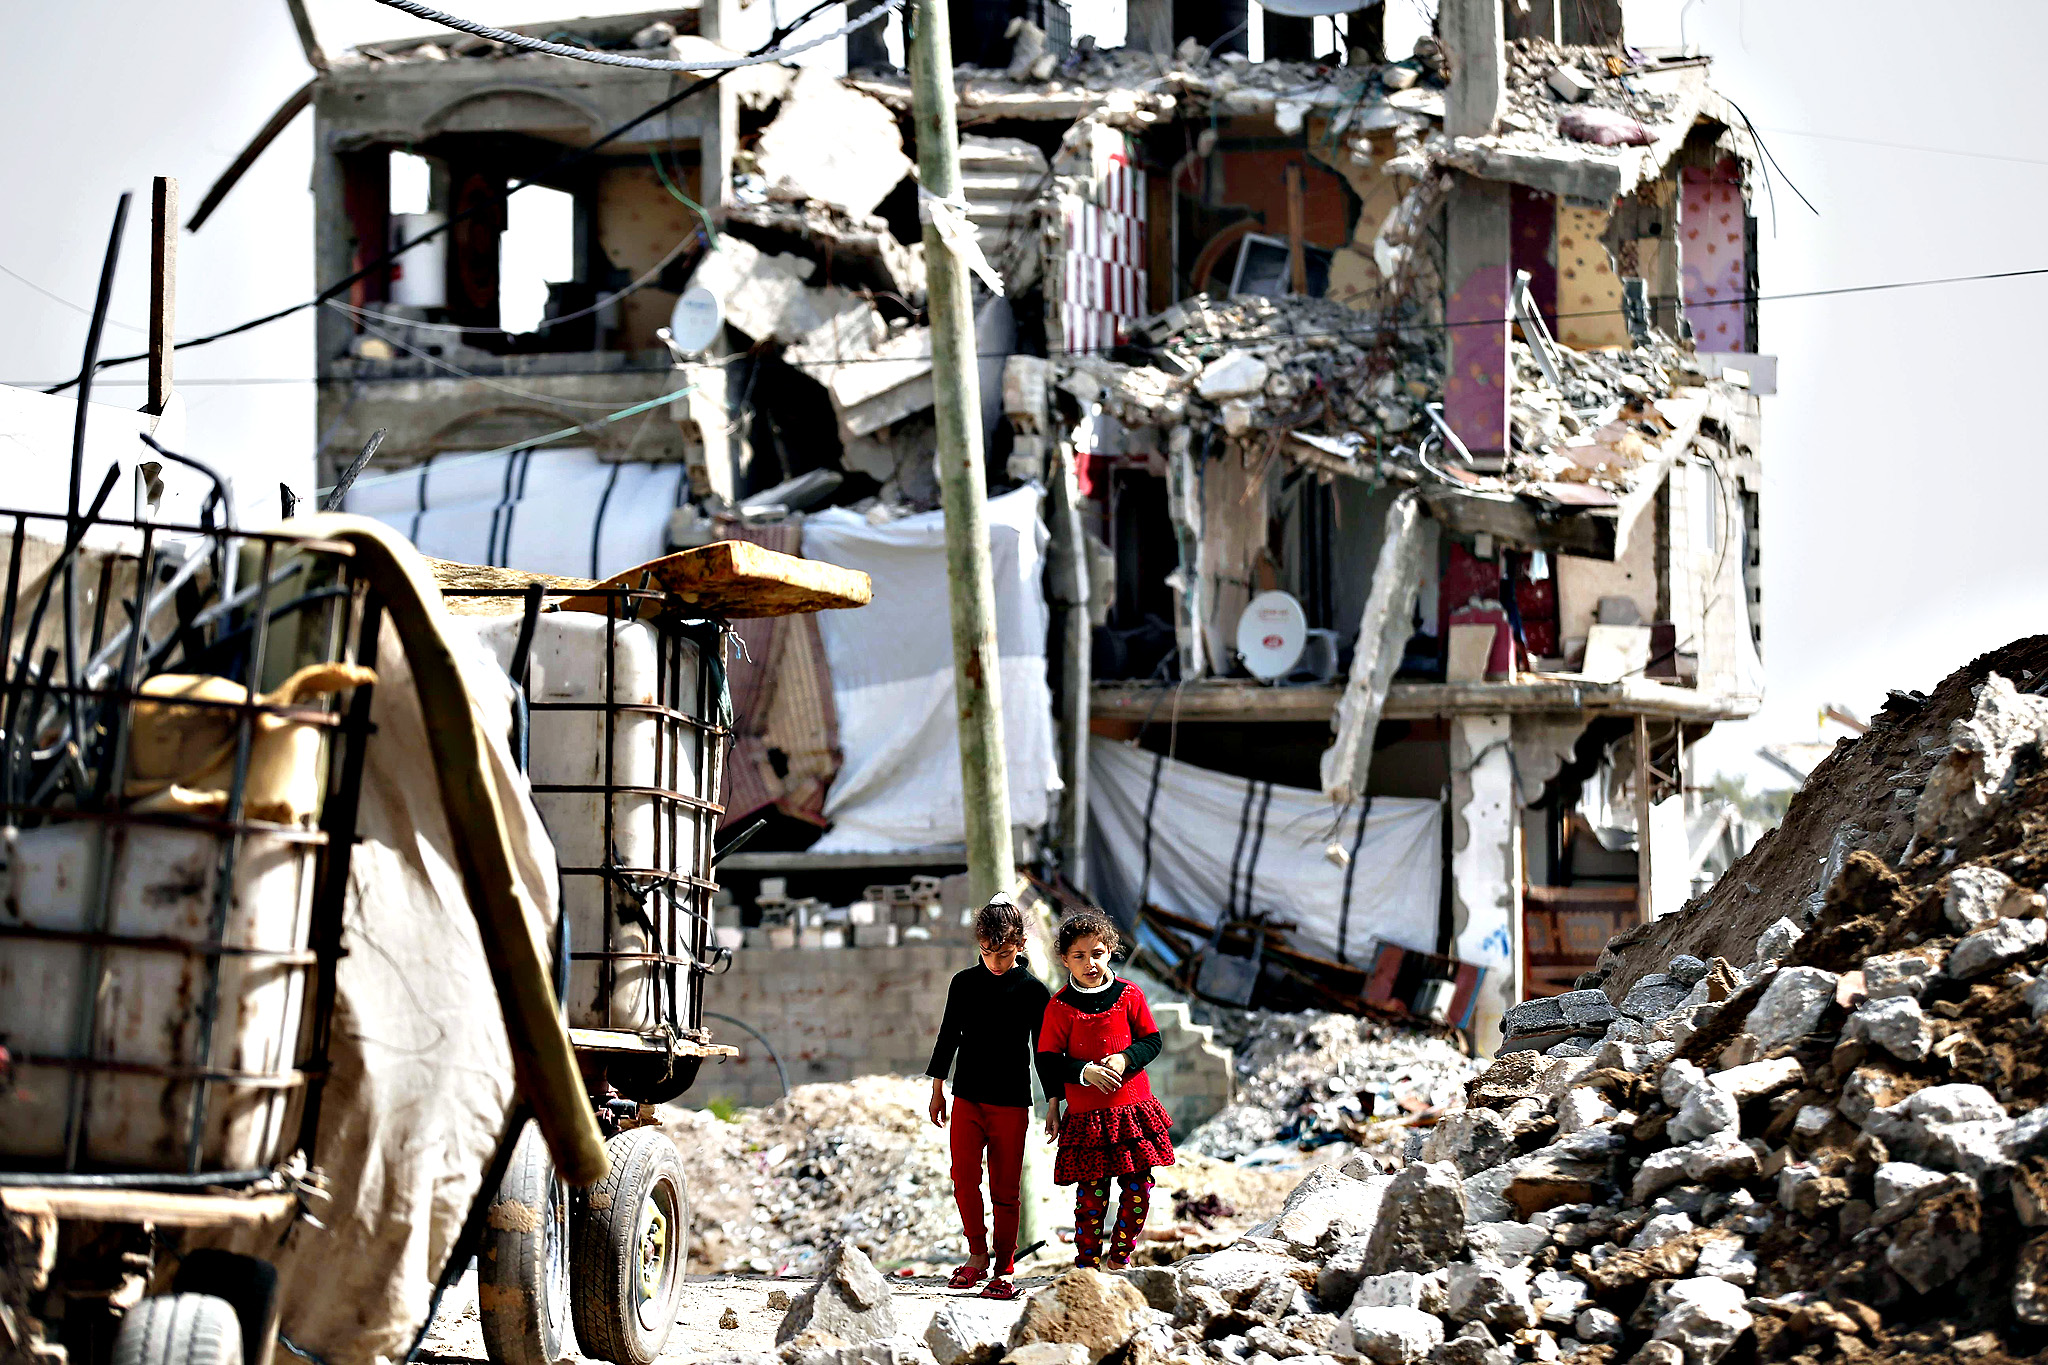 Palestinian girls walk past rubble of heavily damaged buildings on Wednesday in the eastern Gaza City neighborhood of Shejaiya which was destroyed during the 50-day war between Israel and Hamas militants in the summer of 2014.